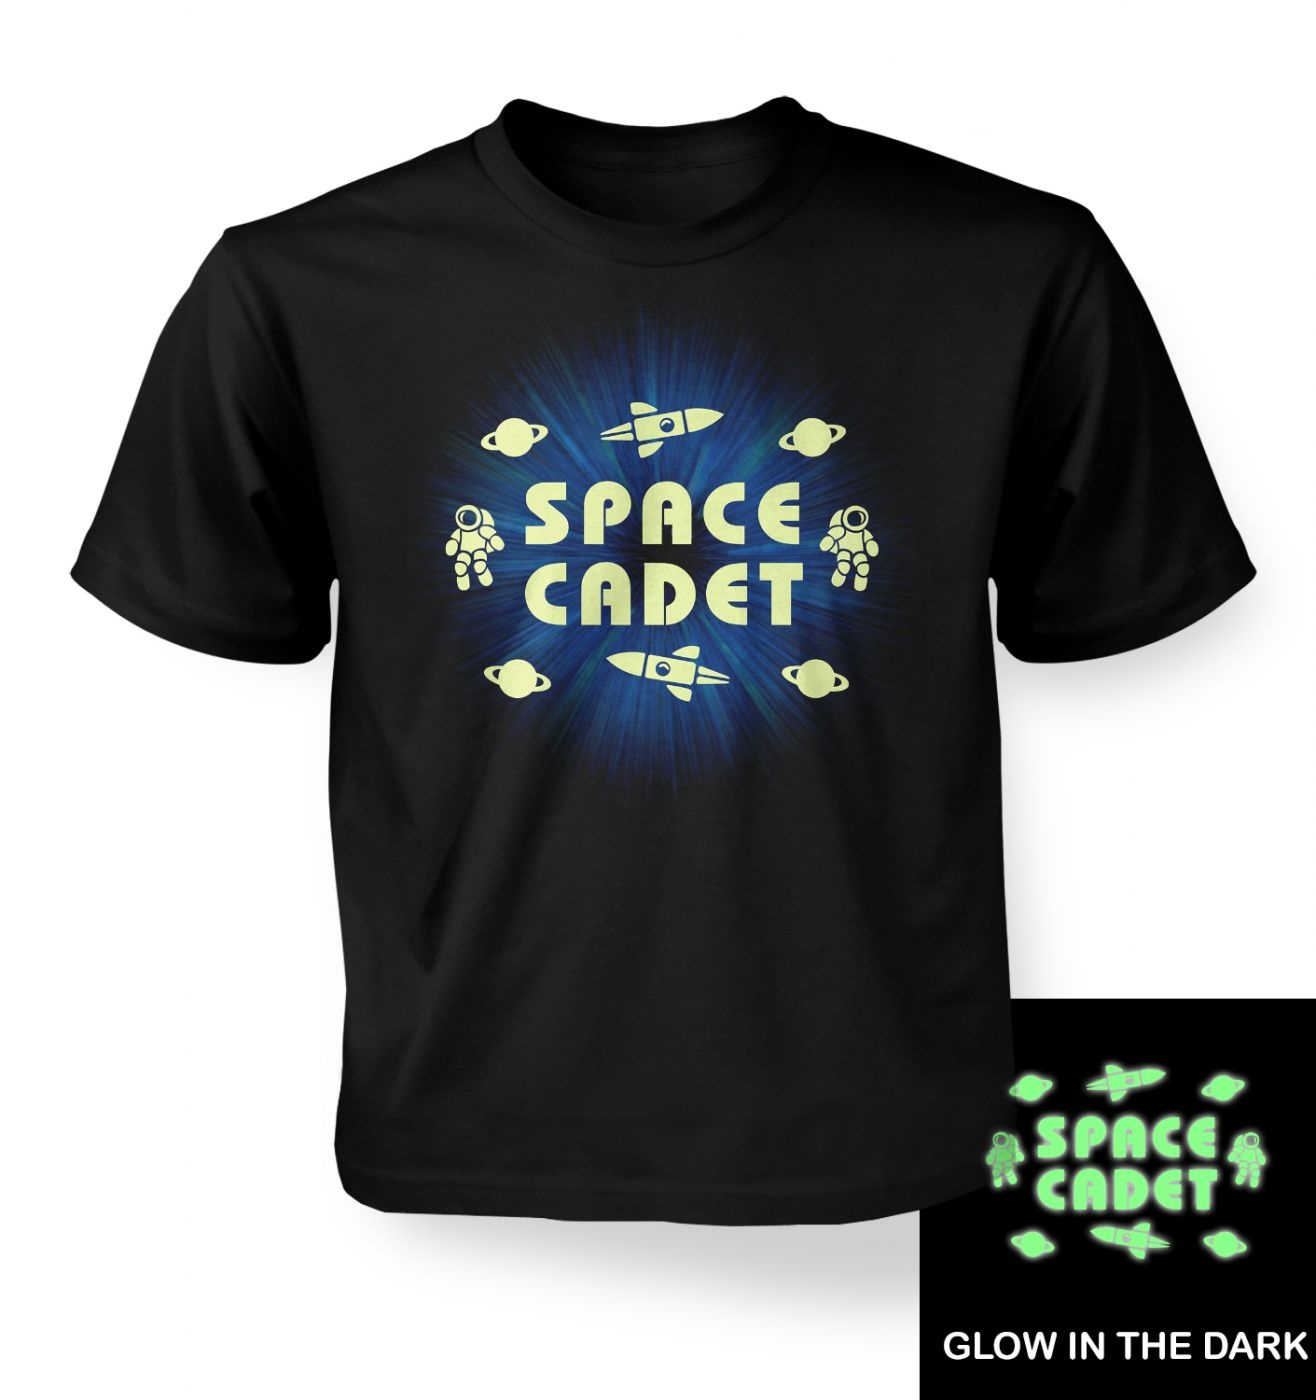 Space Cadet (hybrid glow in the dark) kids' t-shirt